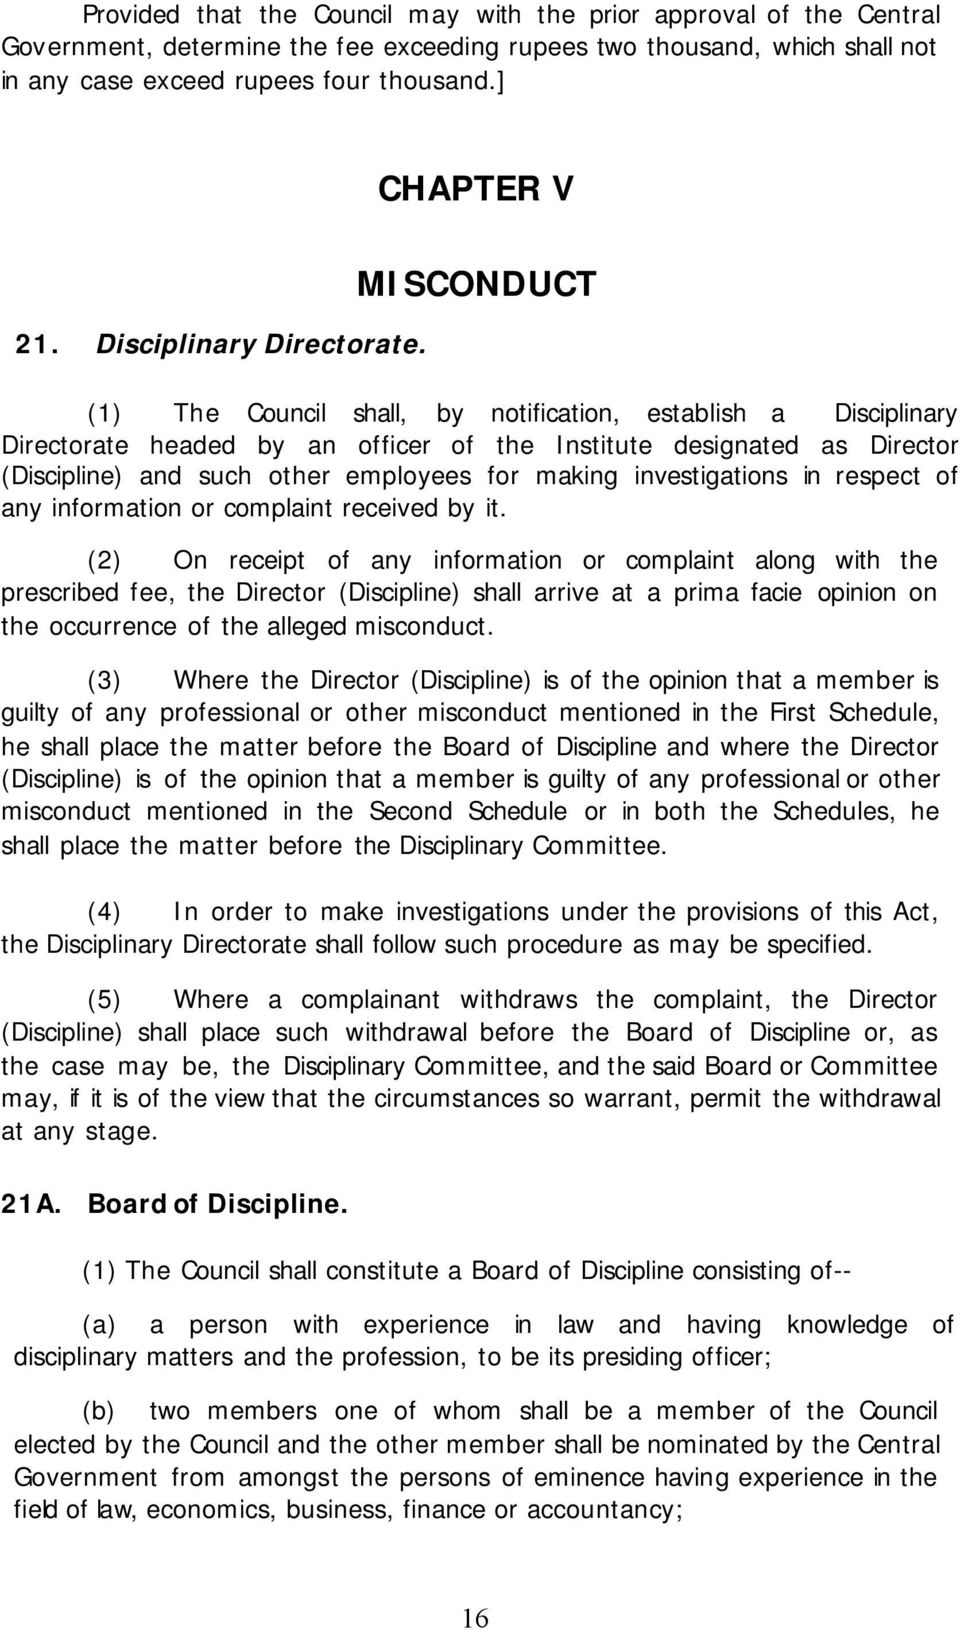 MISCONDUCT (1) The Council shall, by notification, establish a Disciplinary Directorate headed by an officer of the Institute designated as Director (Discipline) and such other employees for making